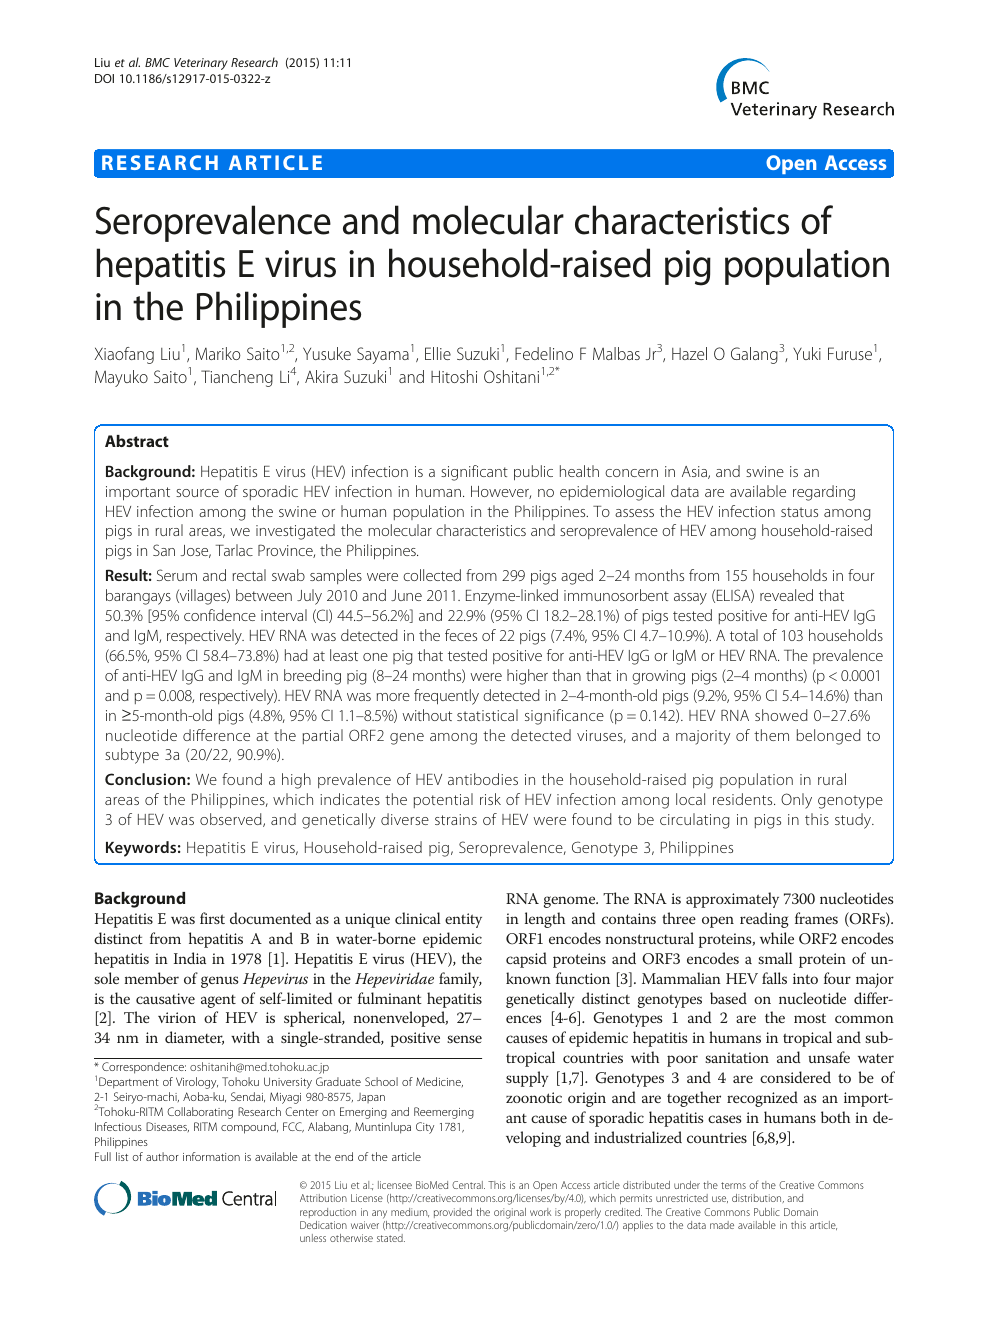 Seroprevalence and molecular characteristics of hepatitis E virus in